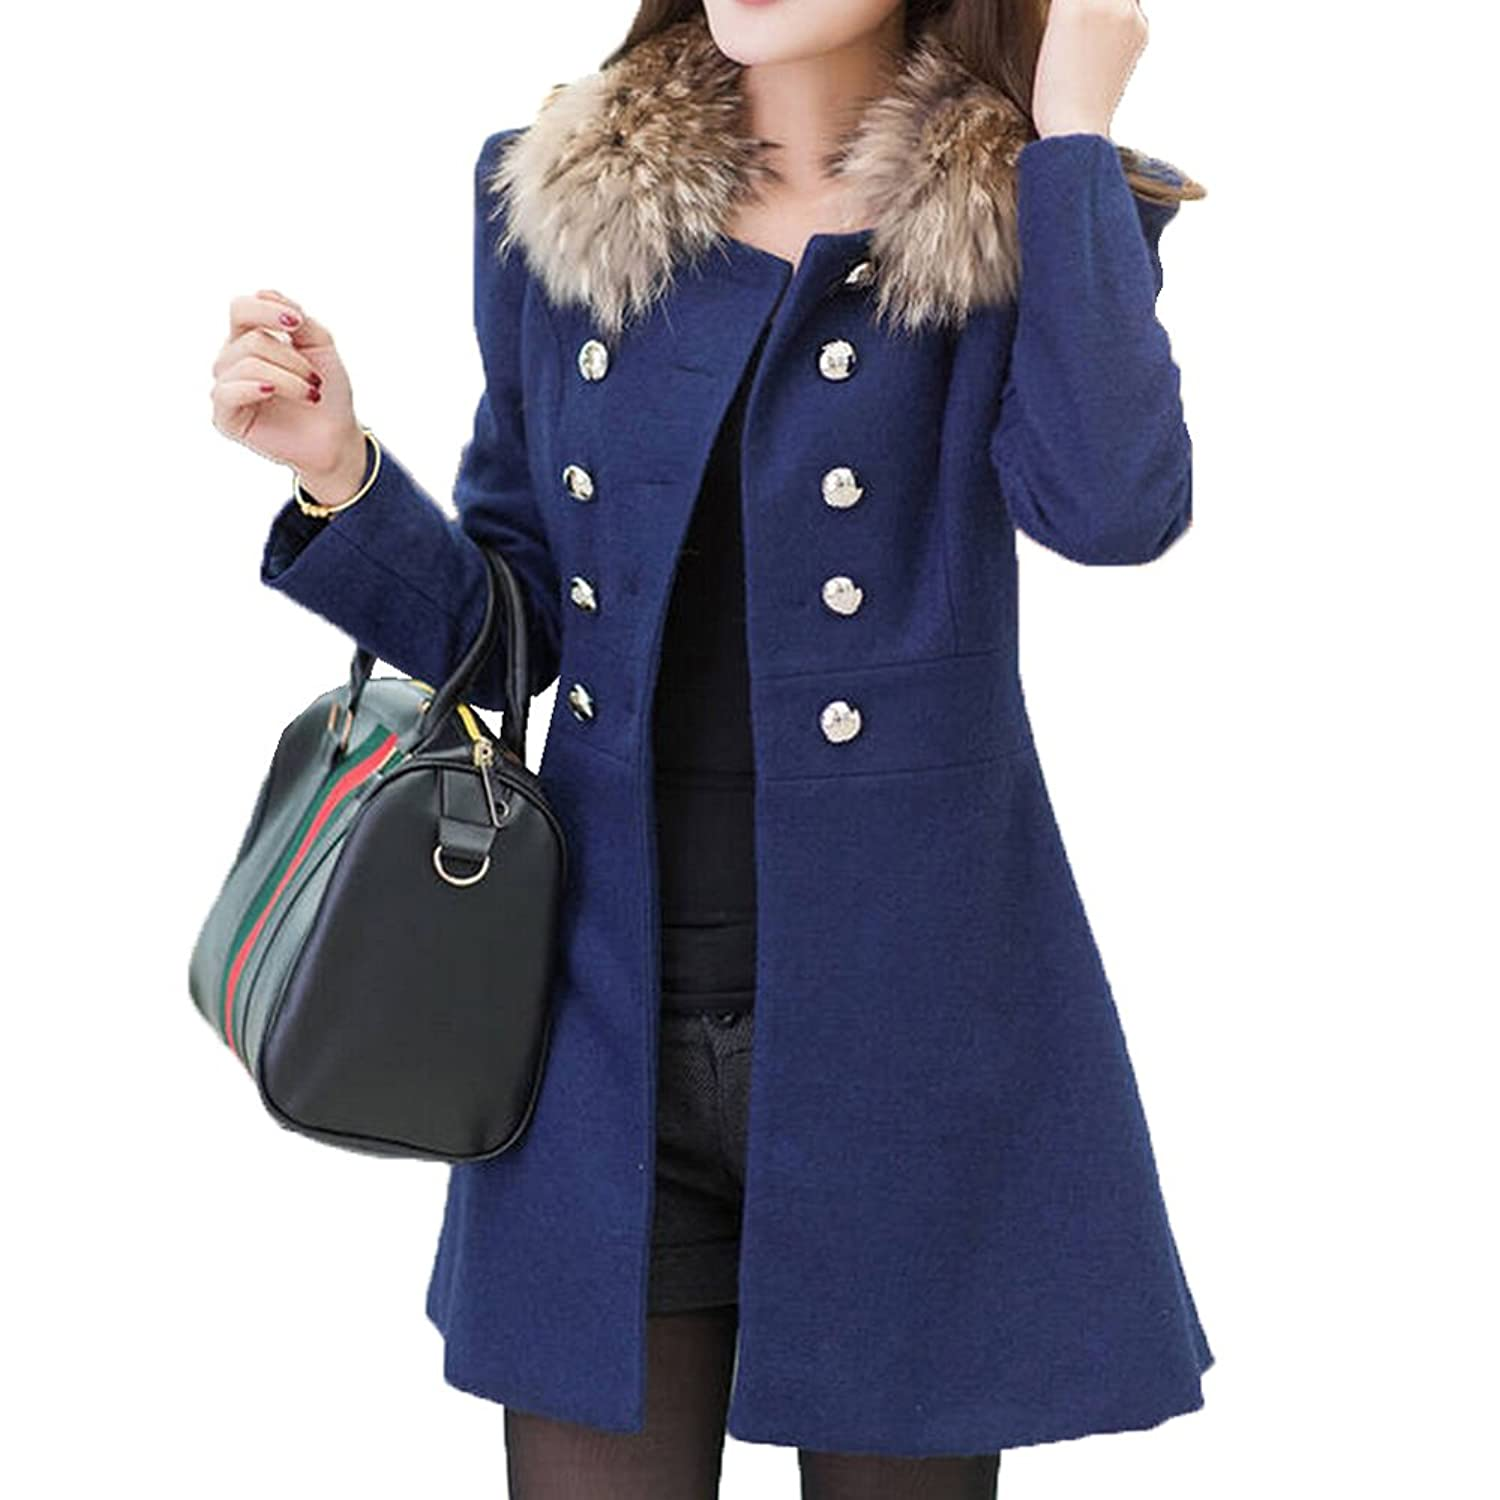 Lady's Winter Double Breasted Wool Trench Coat Warm Wind Jacket for Women